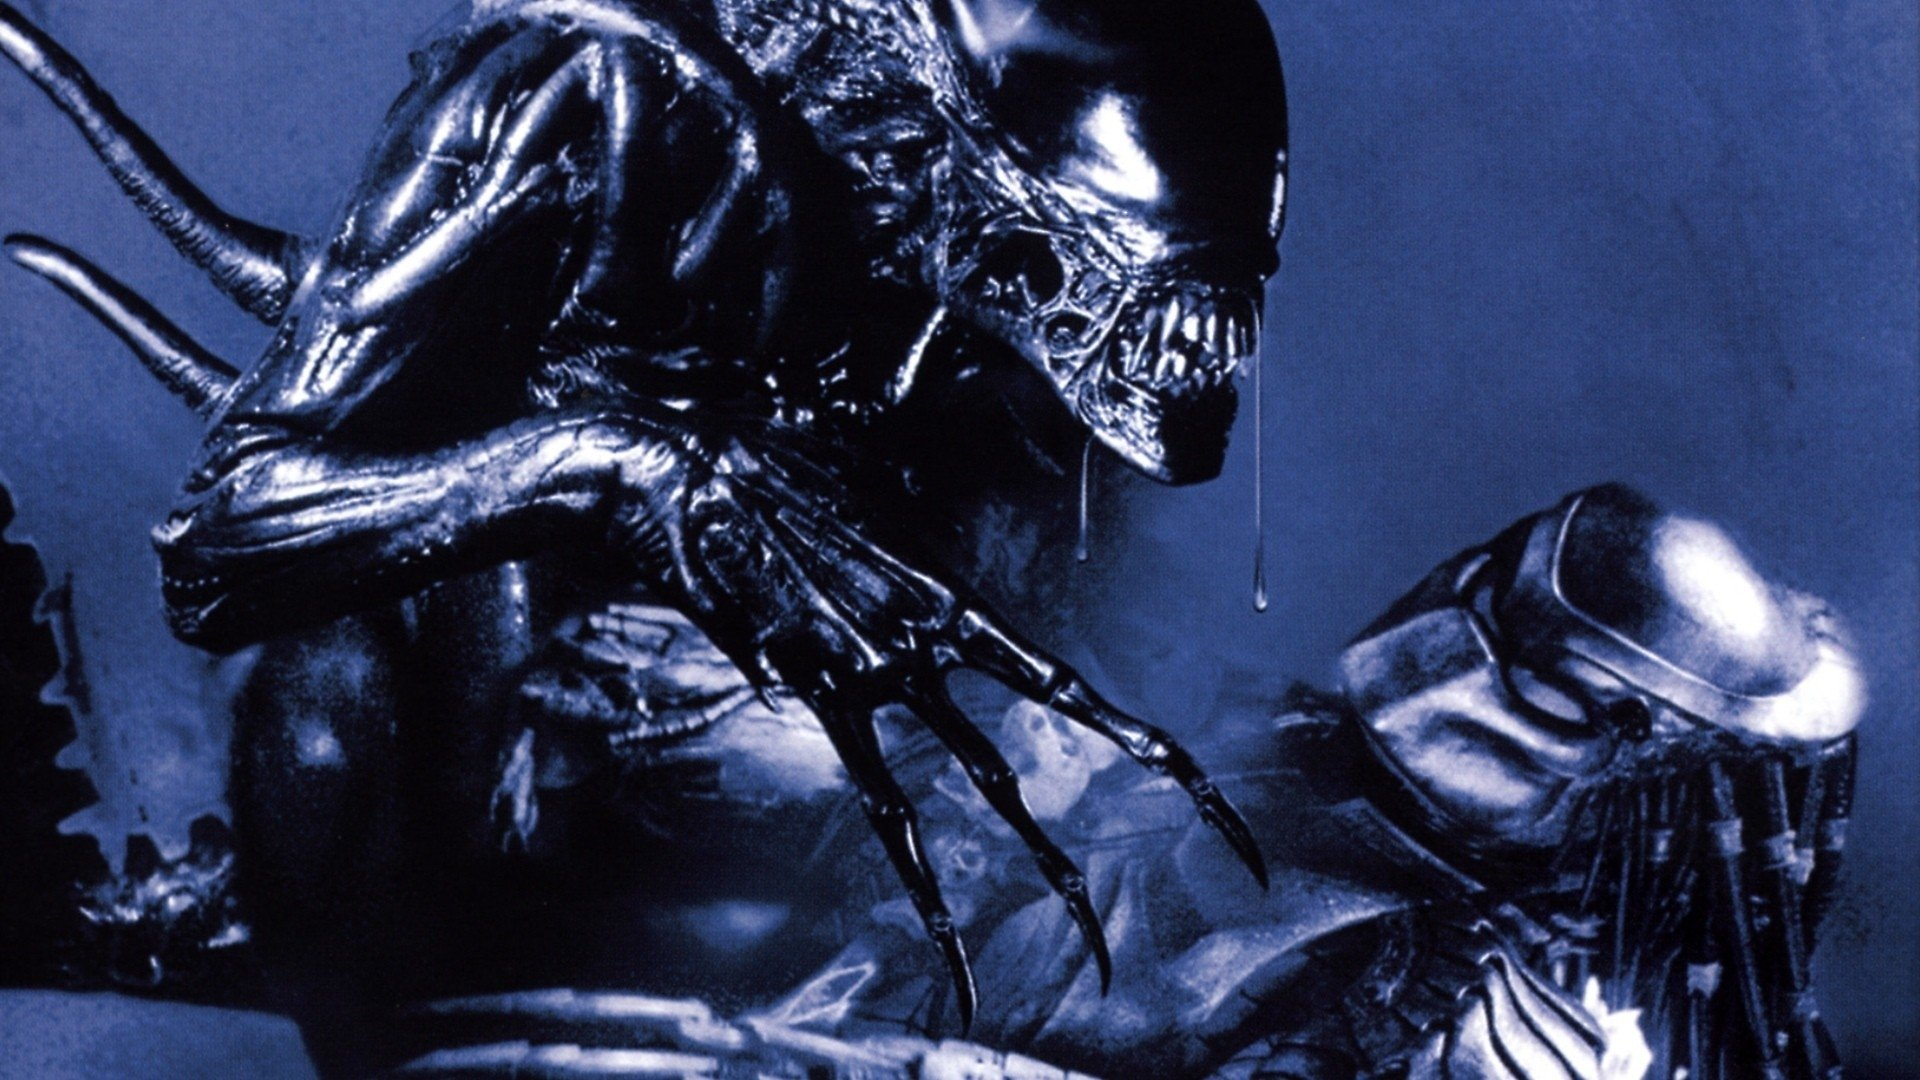 Alien Vs Predator Wallpaper Hd Alien vs. Preda...